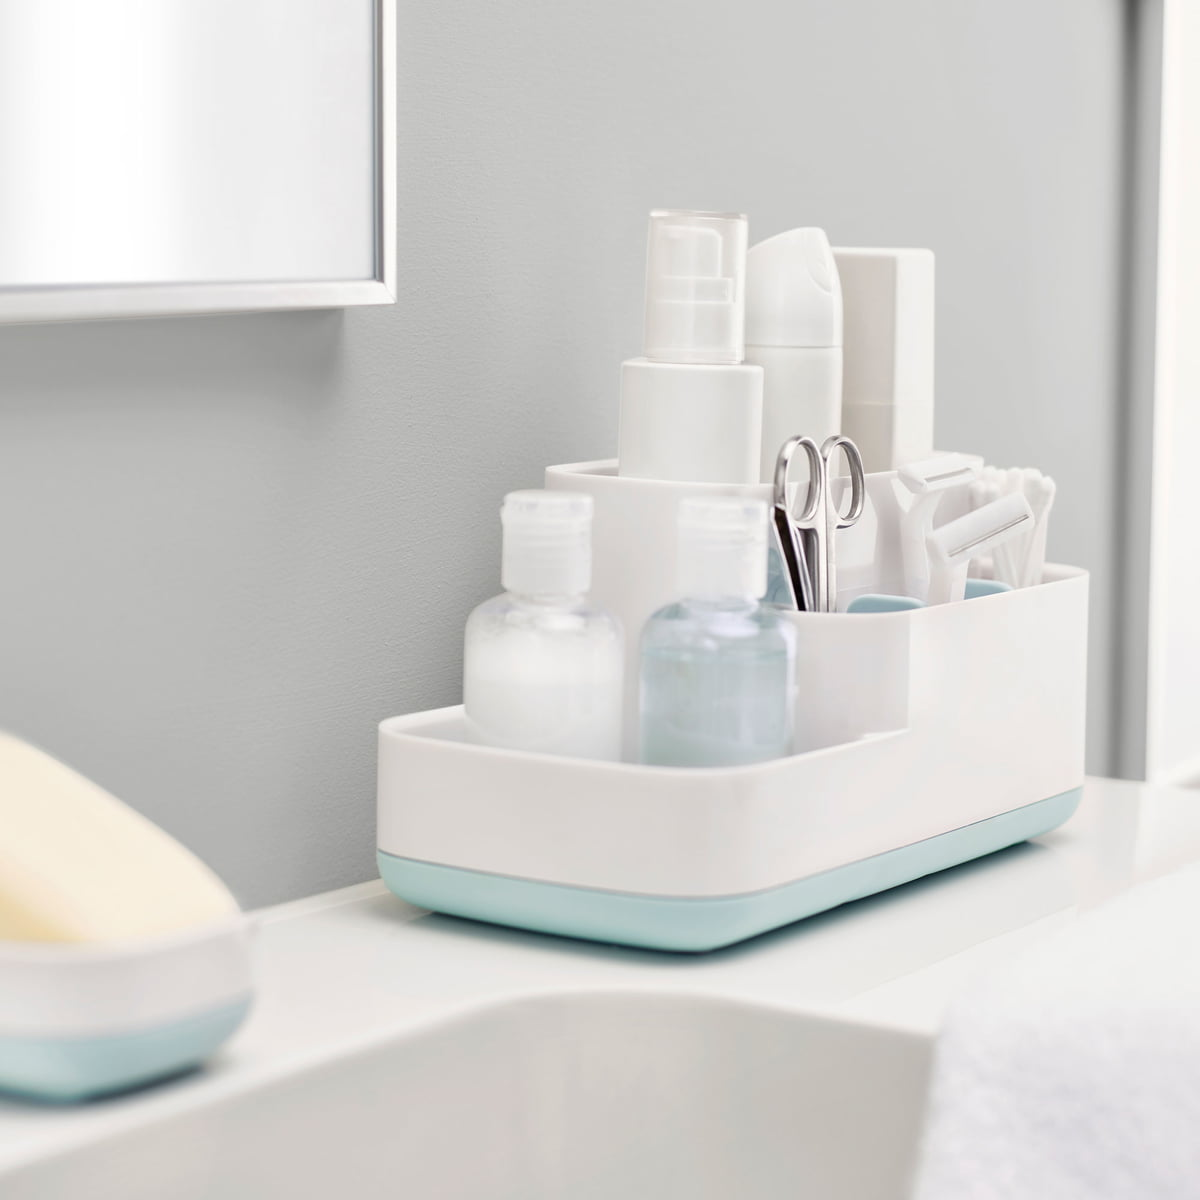 Easy-Store Bathroom Caddy by Joseph Joseph | Connox